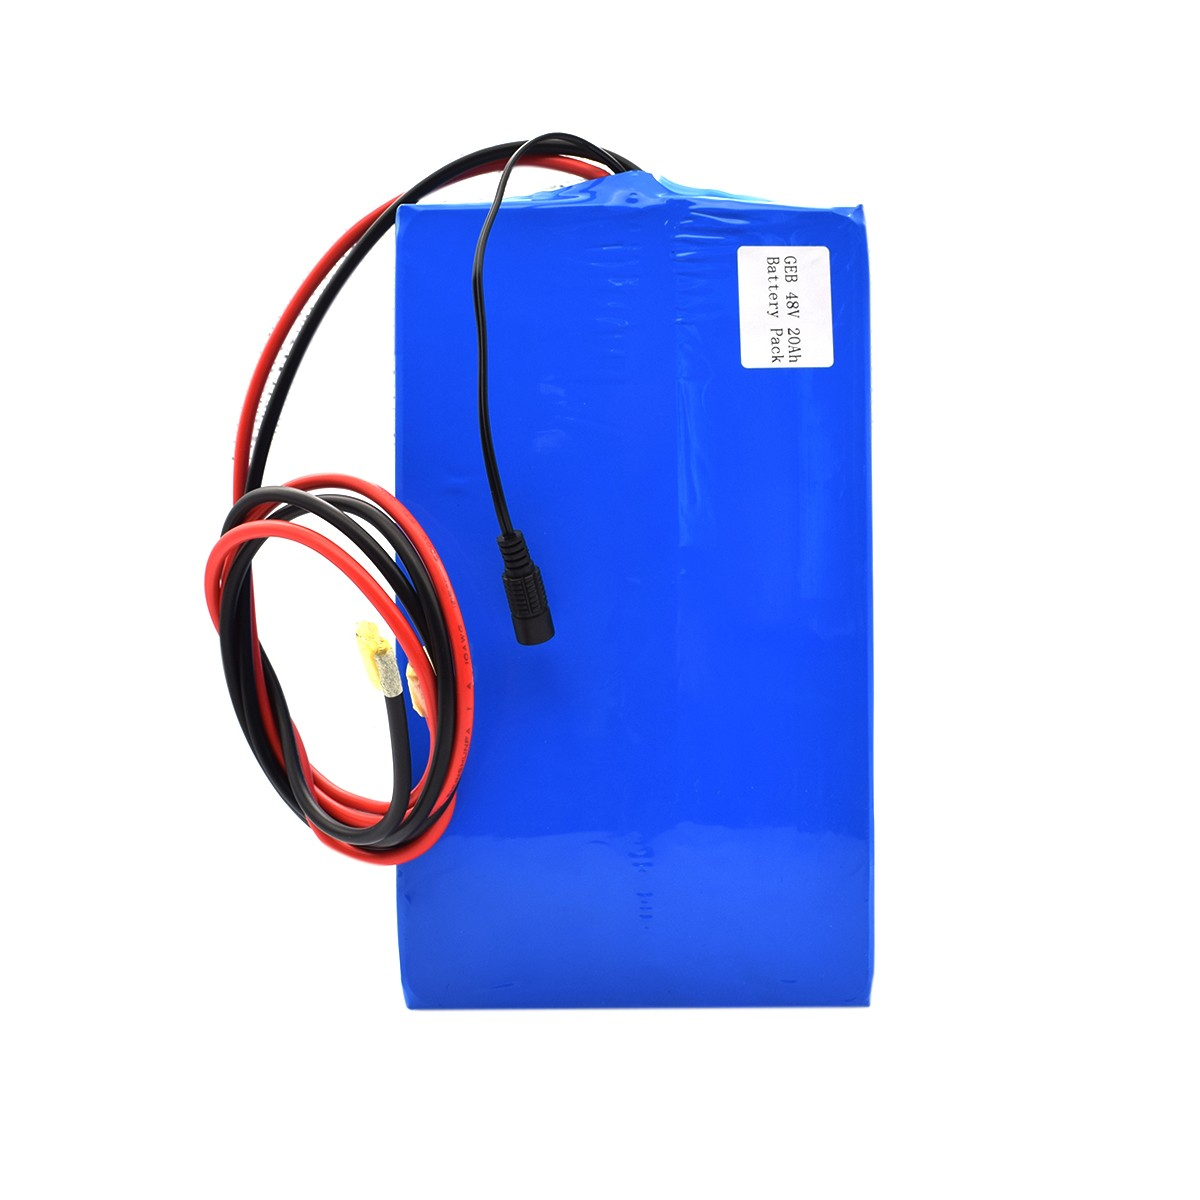 48V 20Ah rechargeable li-ion battery pack for electric vehicle